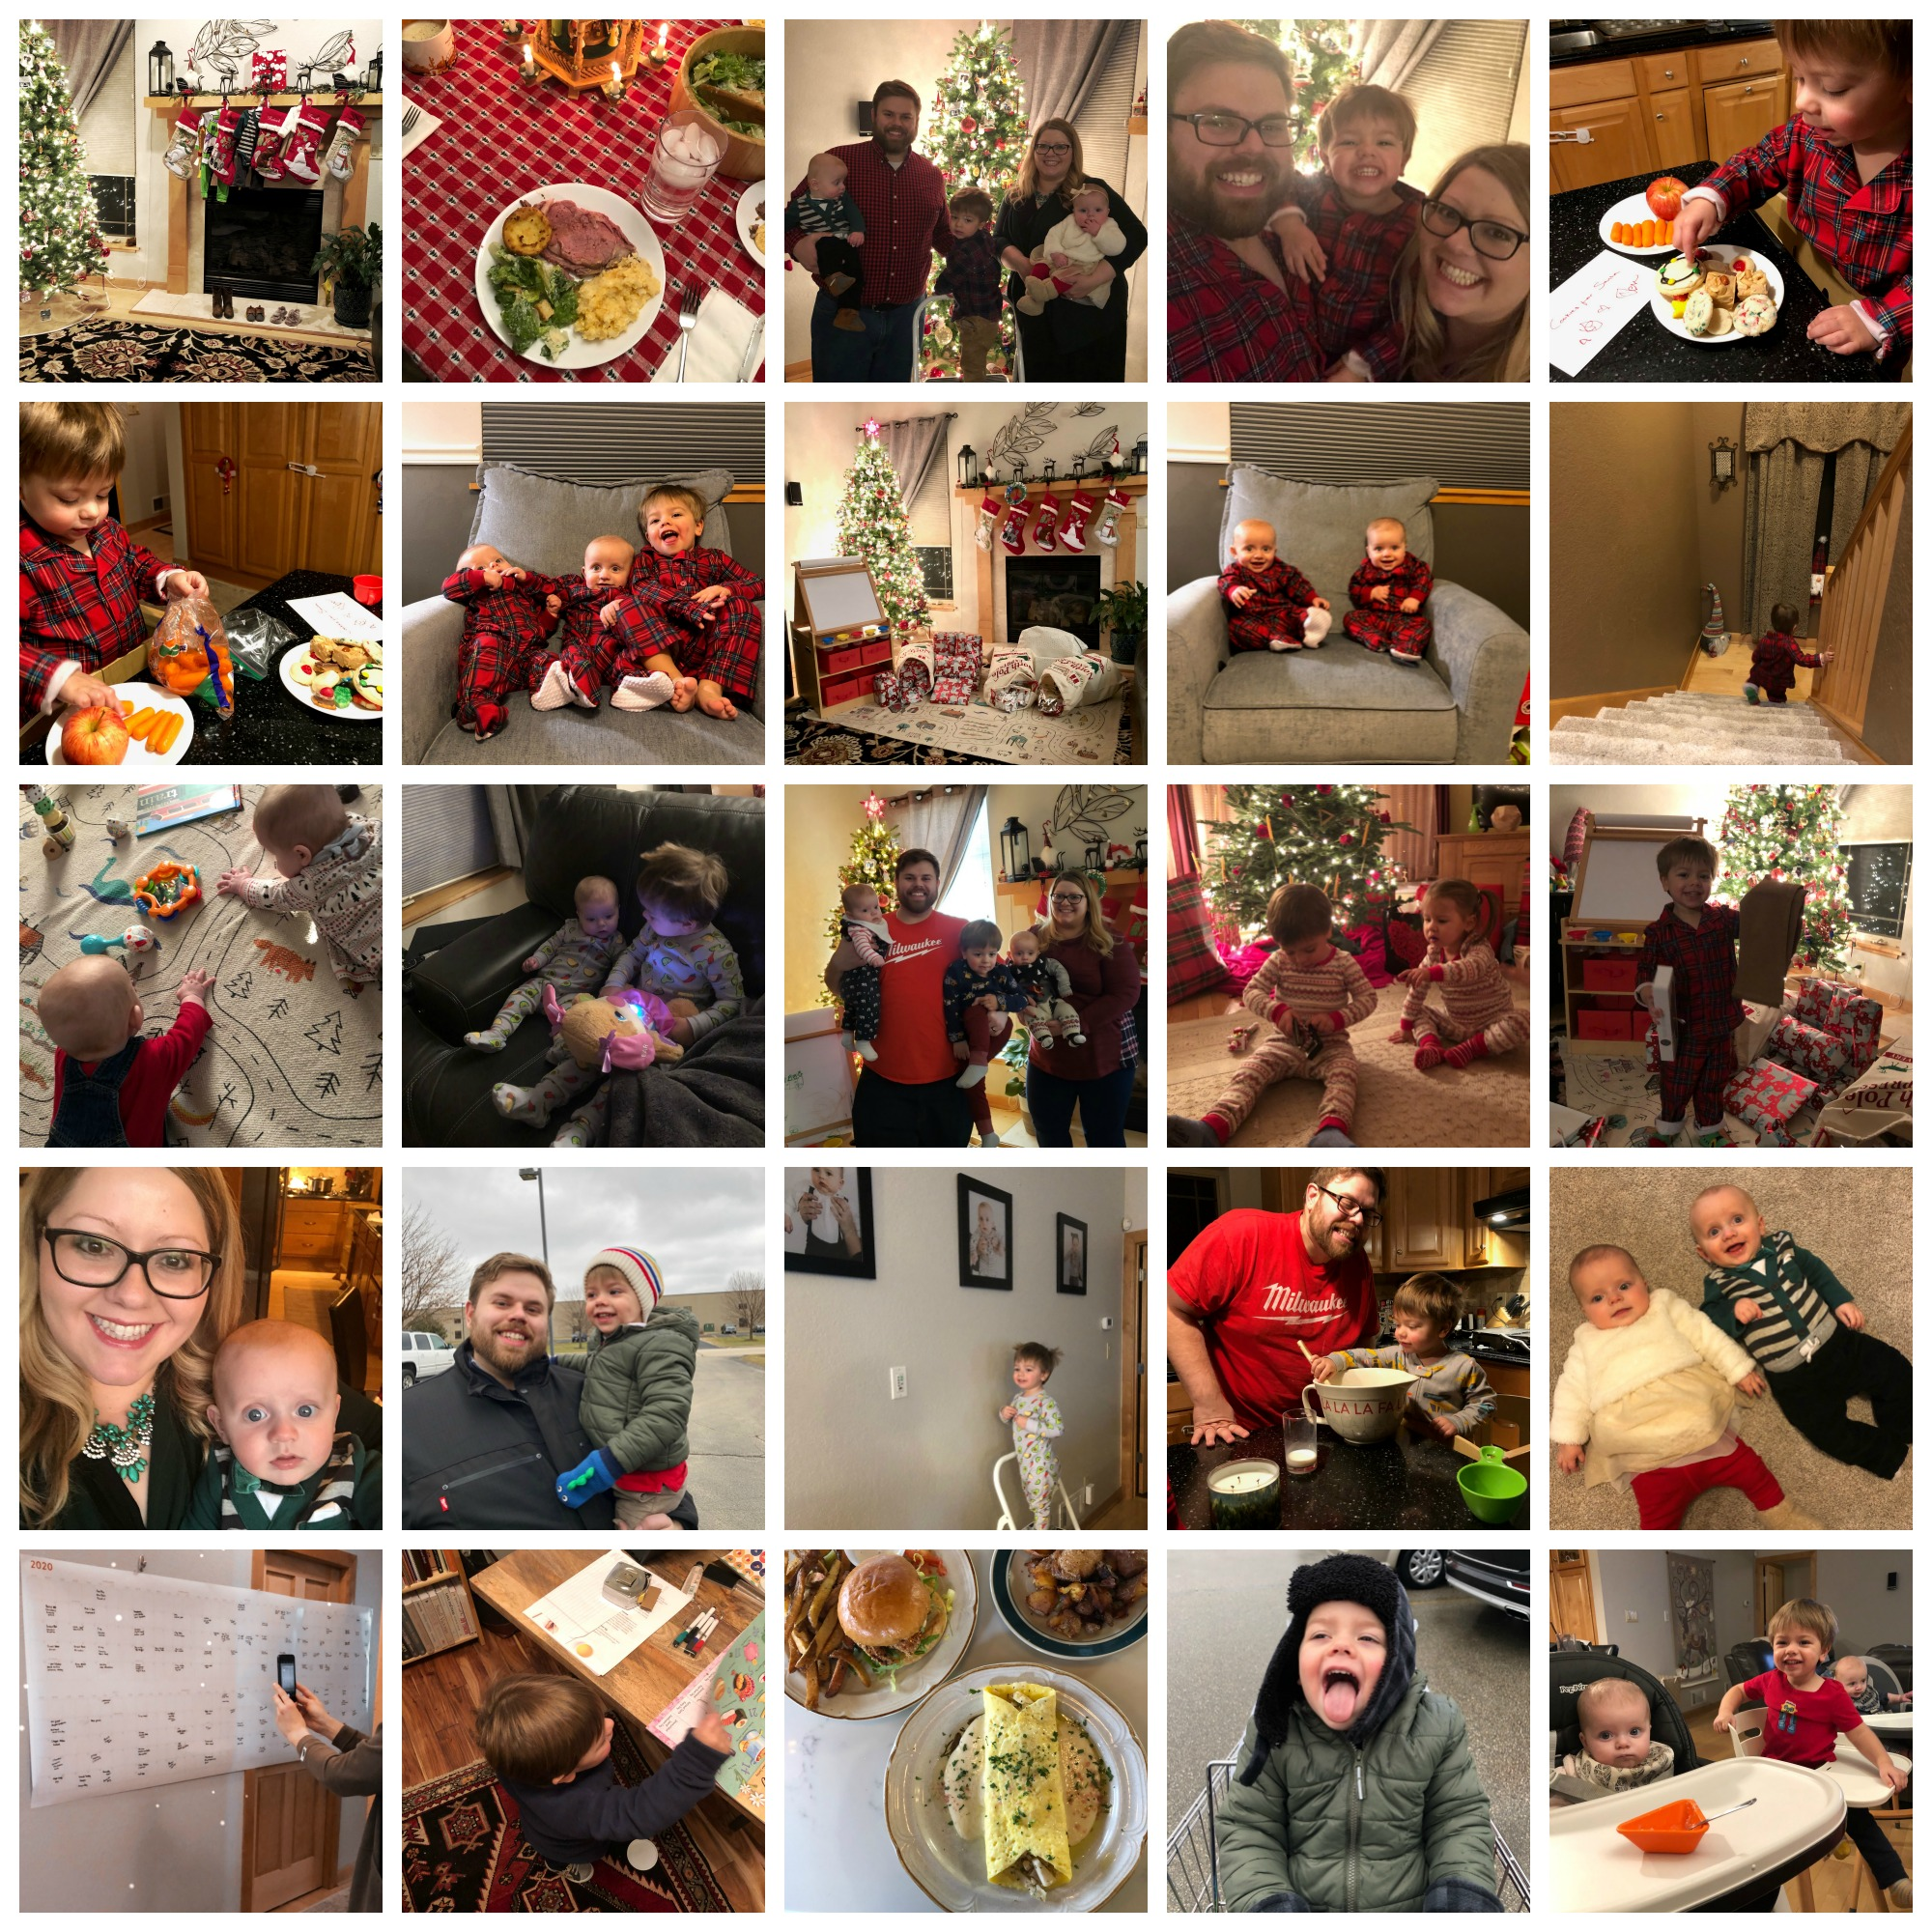 Christmas with the Kelnhofers